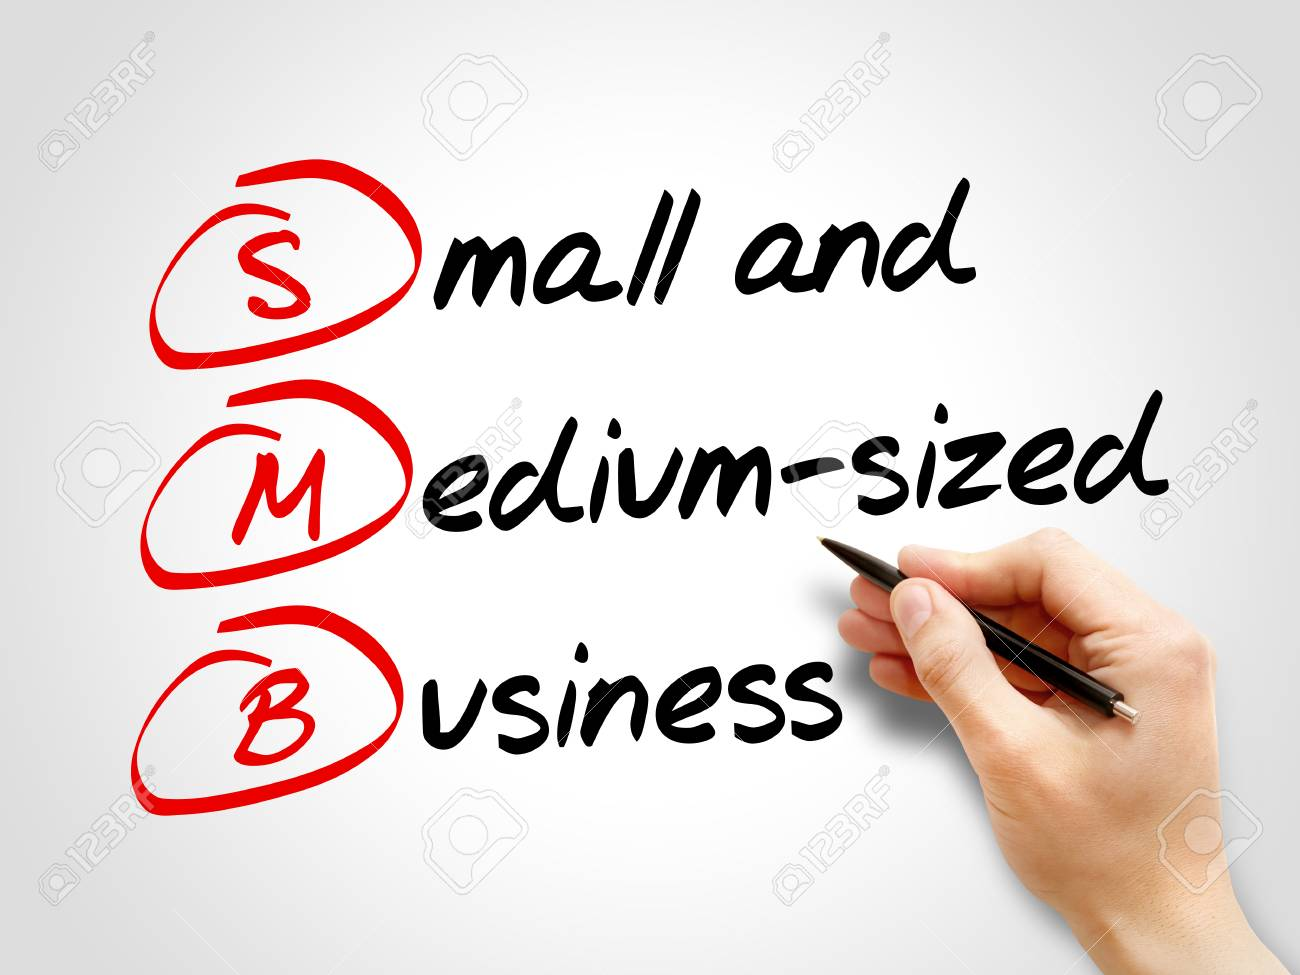 SMB - Small and Medium-Sized Business, acronym business concept - 56499319